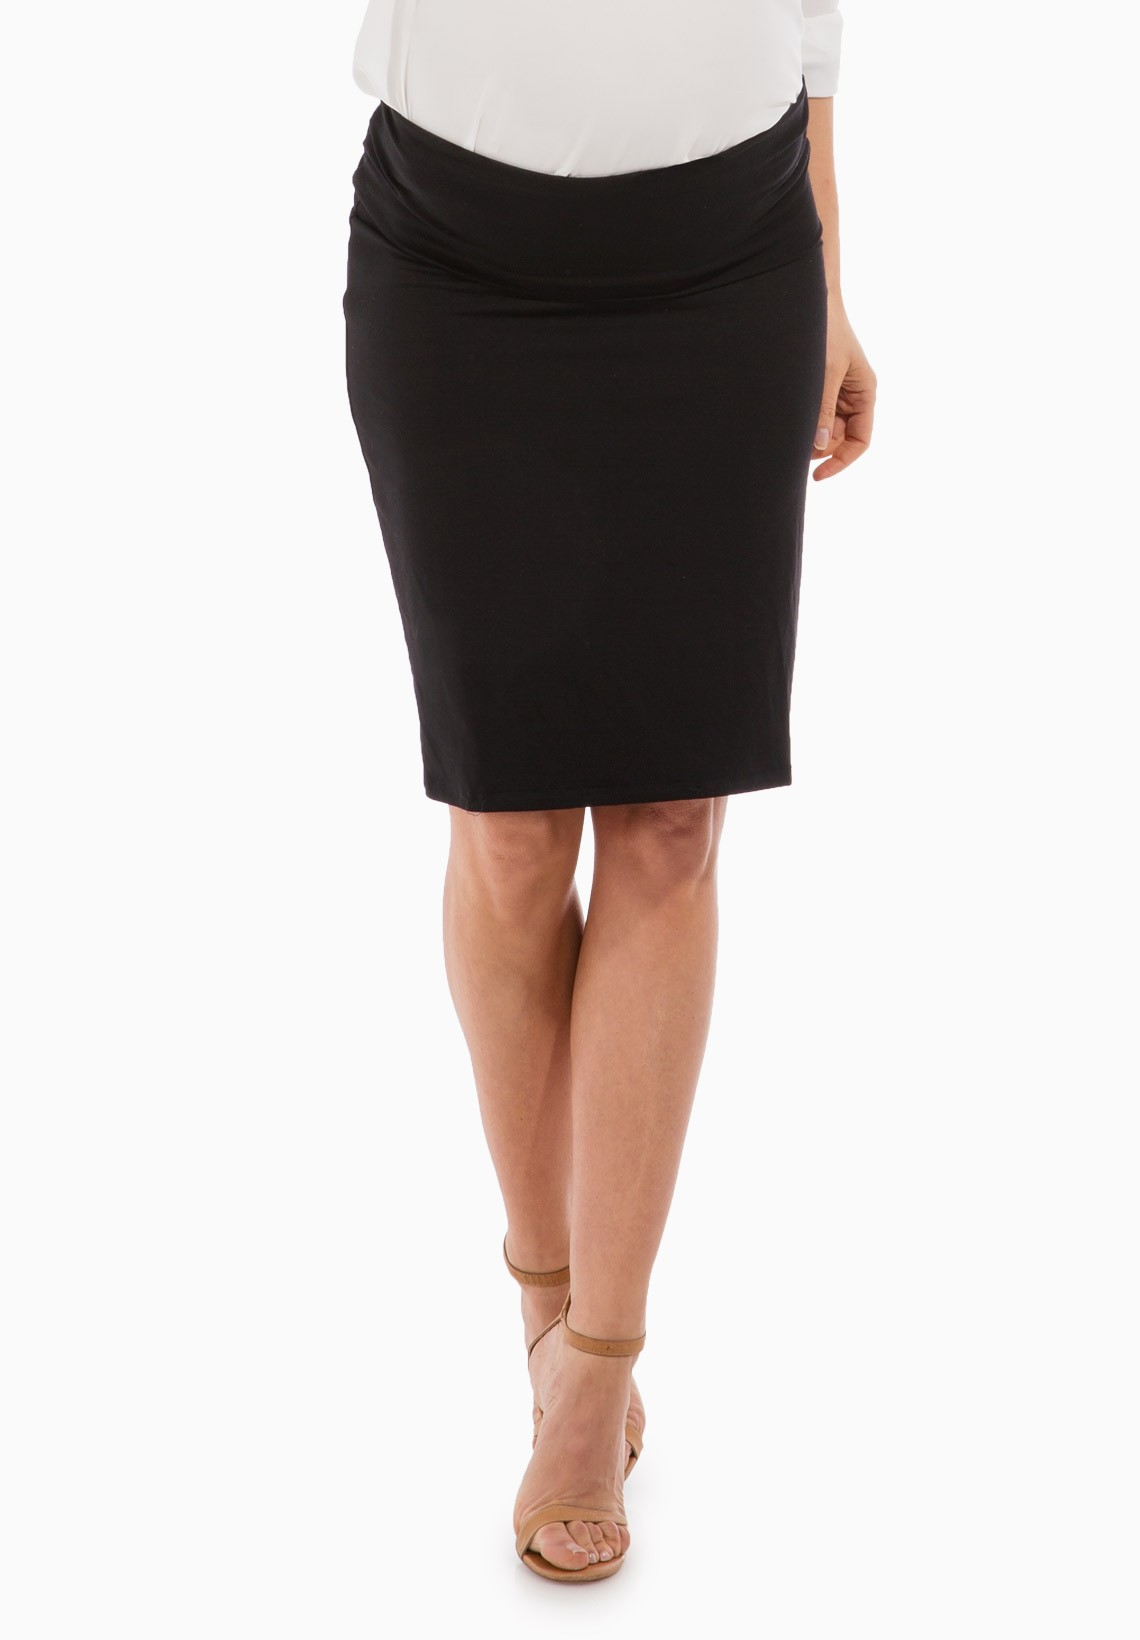 Find Black maternity skirts at ShopStyle. Shop the latest collection of Black maternity skirts from the most popular stores - all in one place.